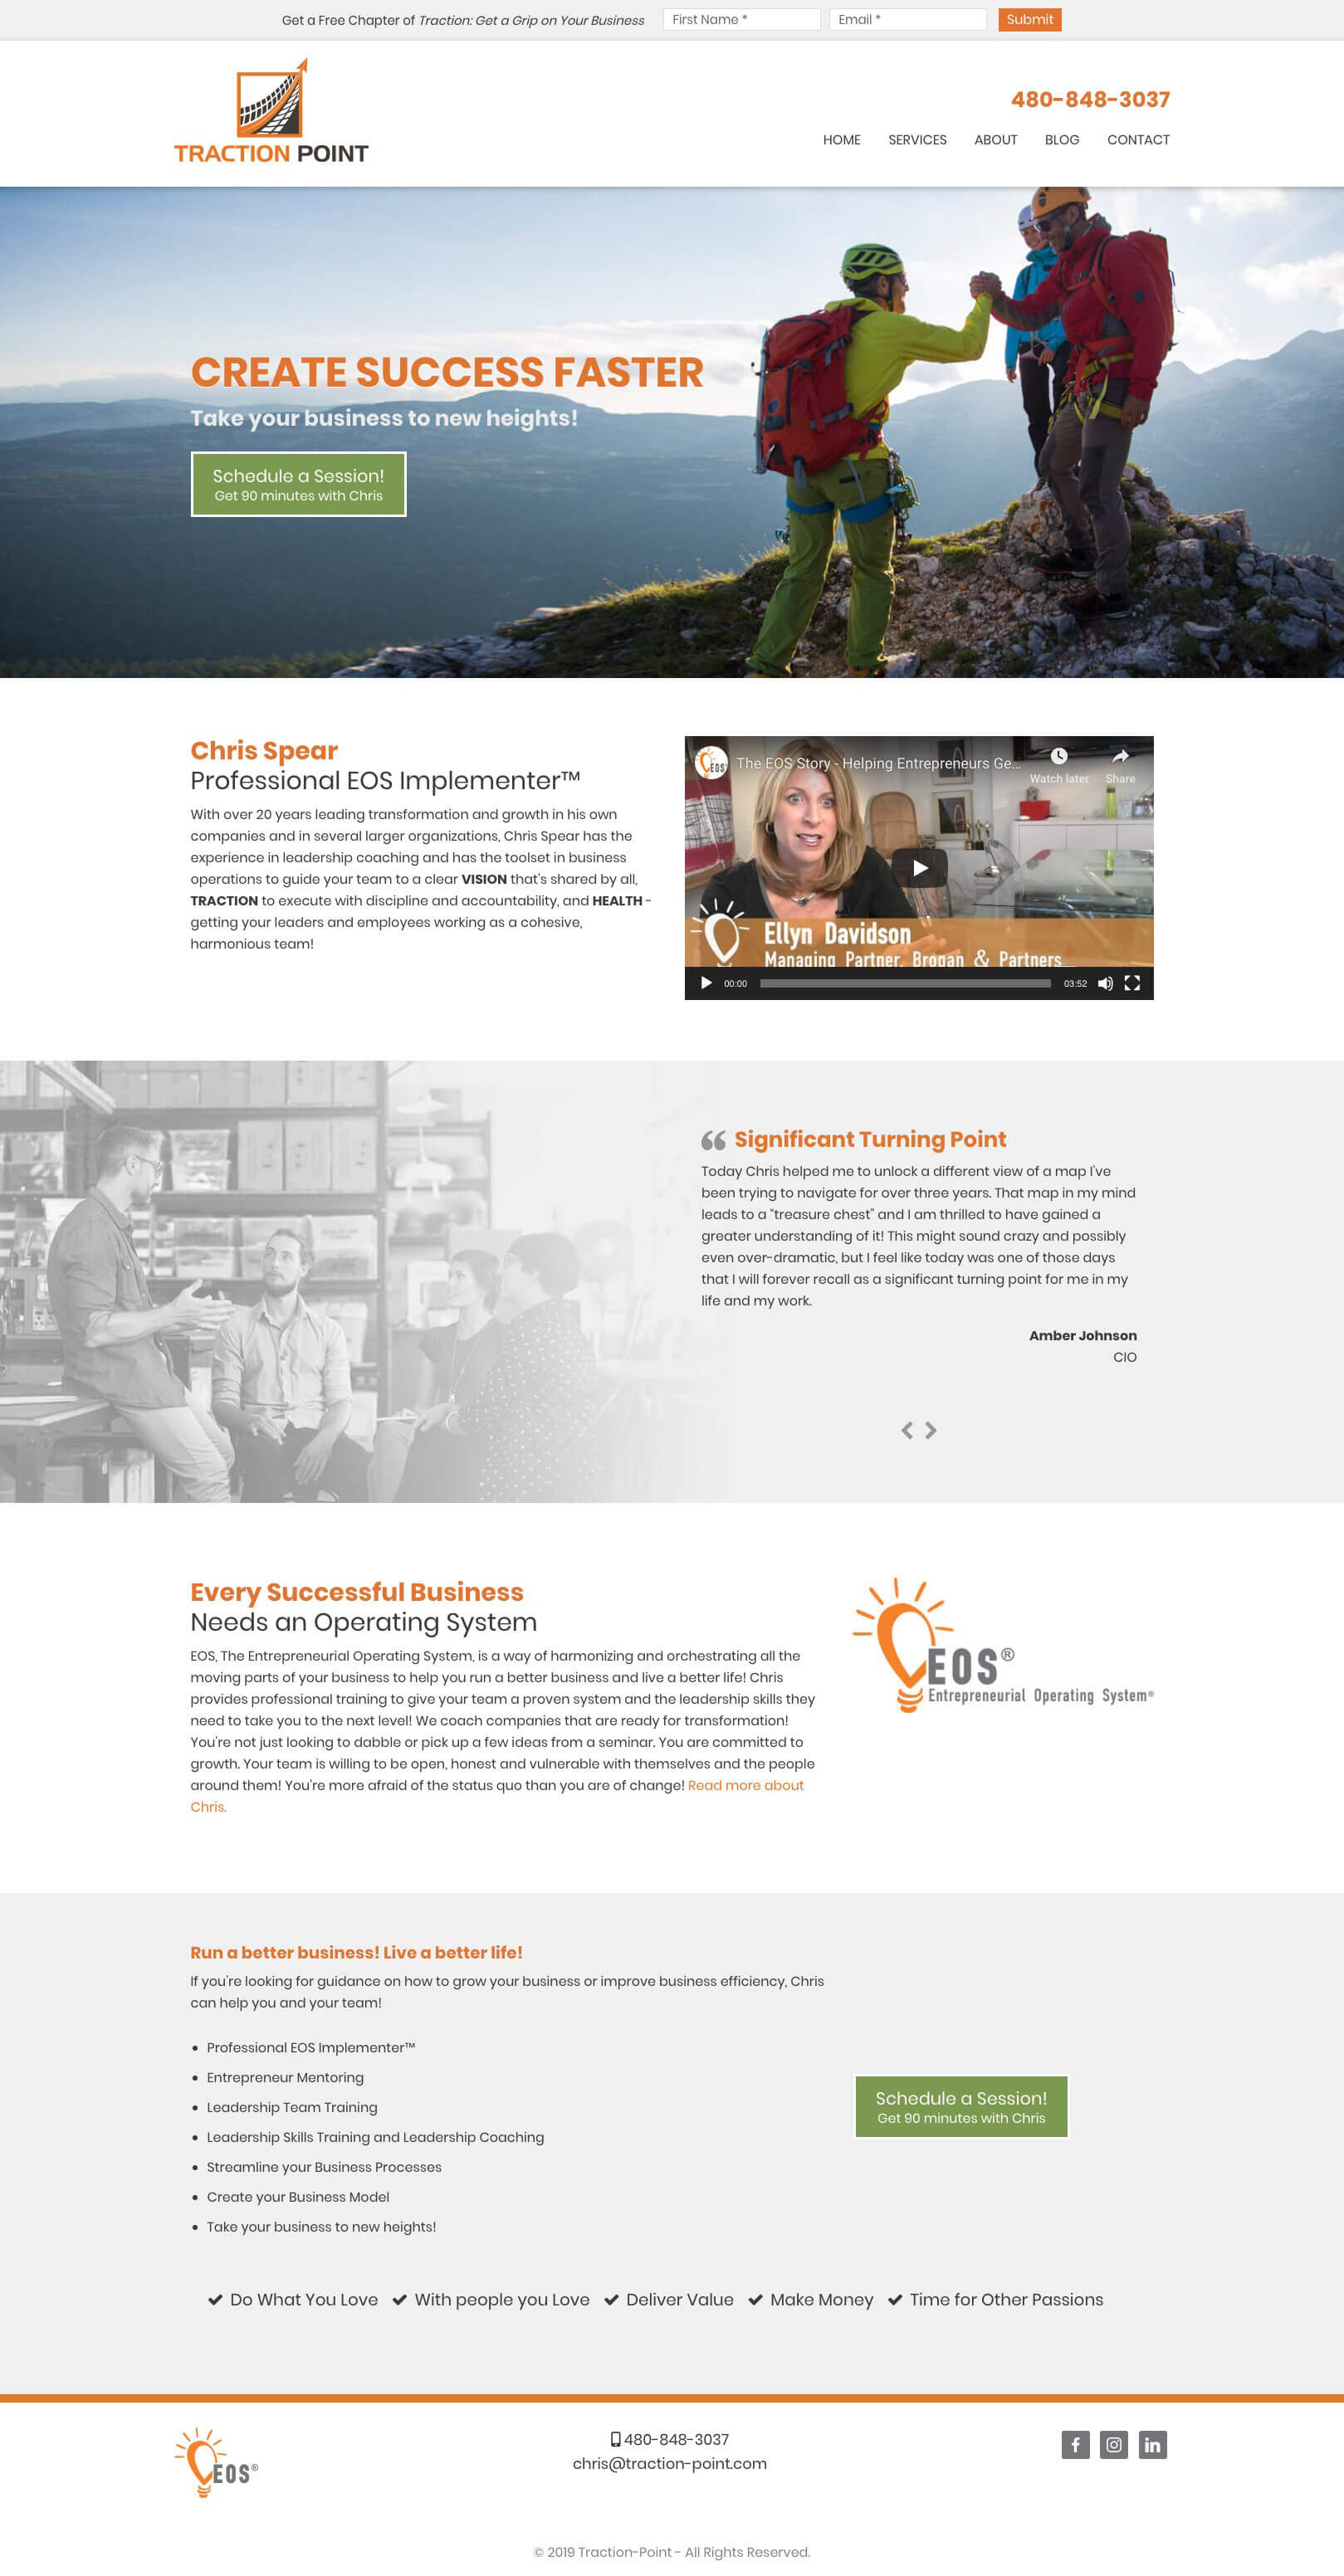 traction point web design concept